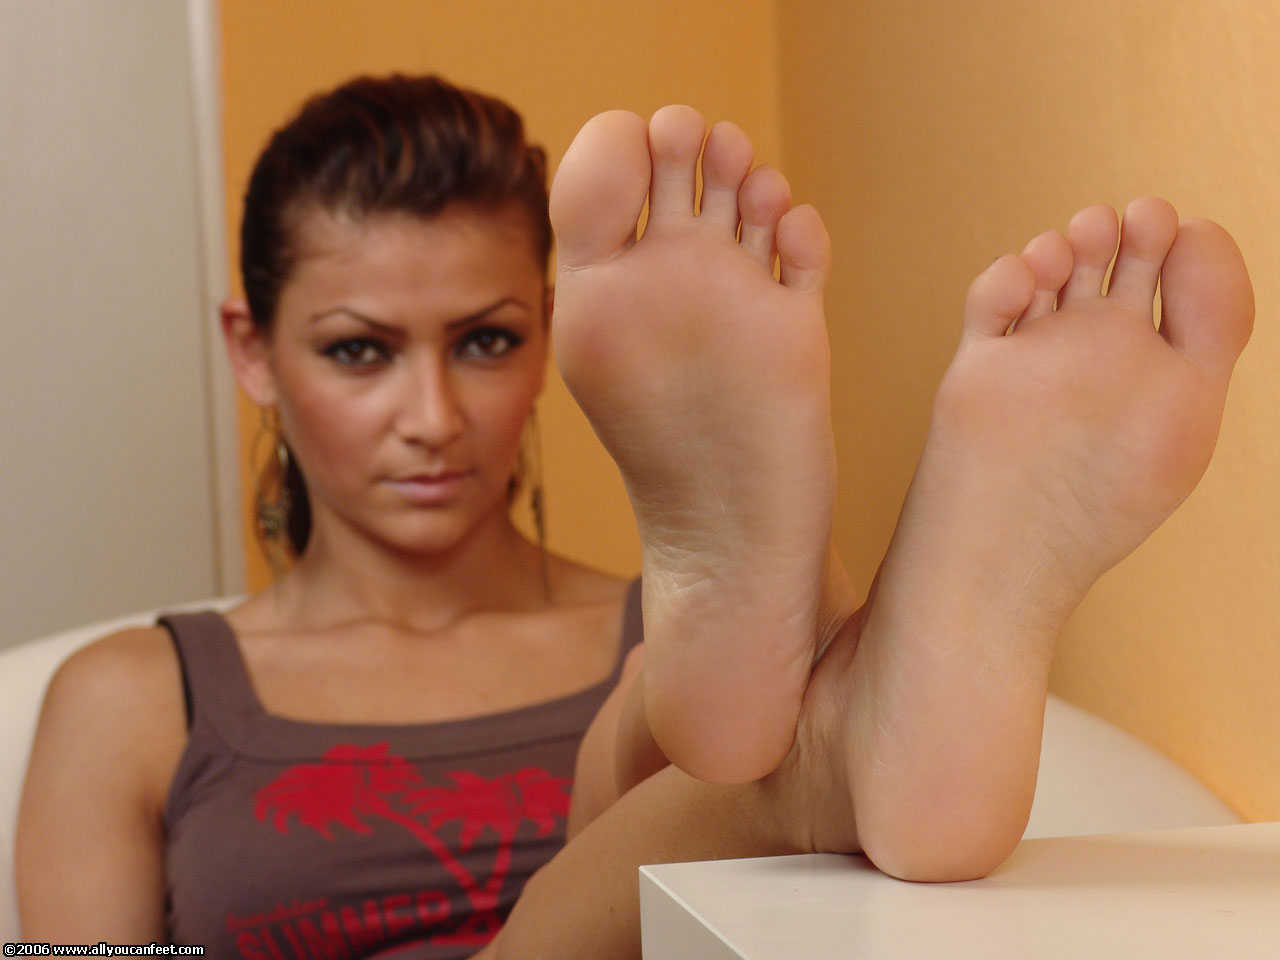 Allyoucanfeet - Preview Pics! (click to enlarge)